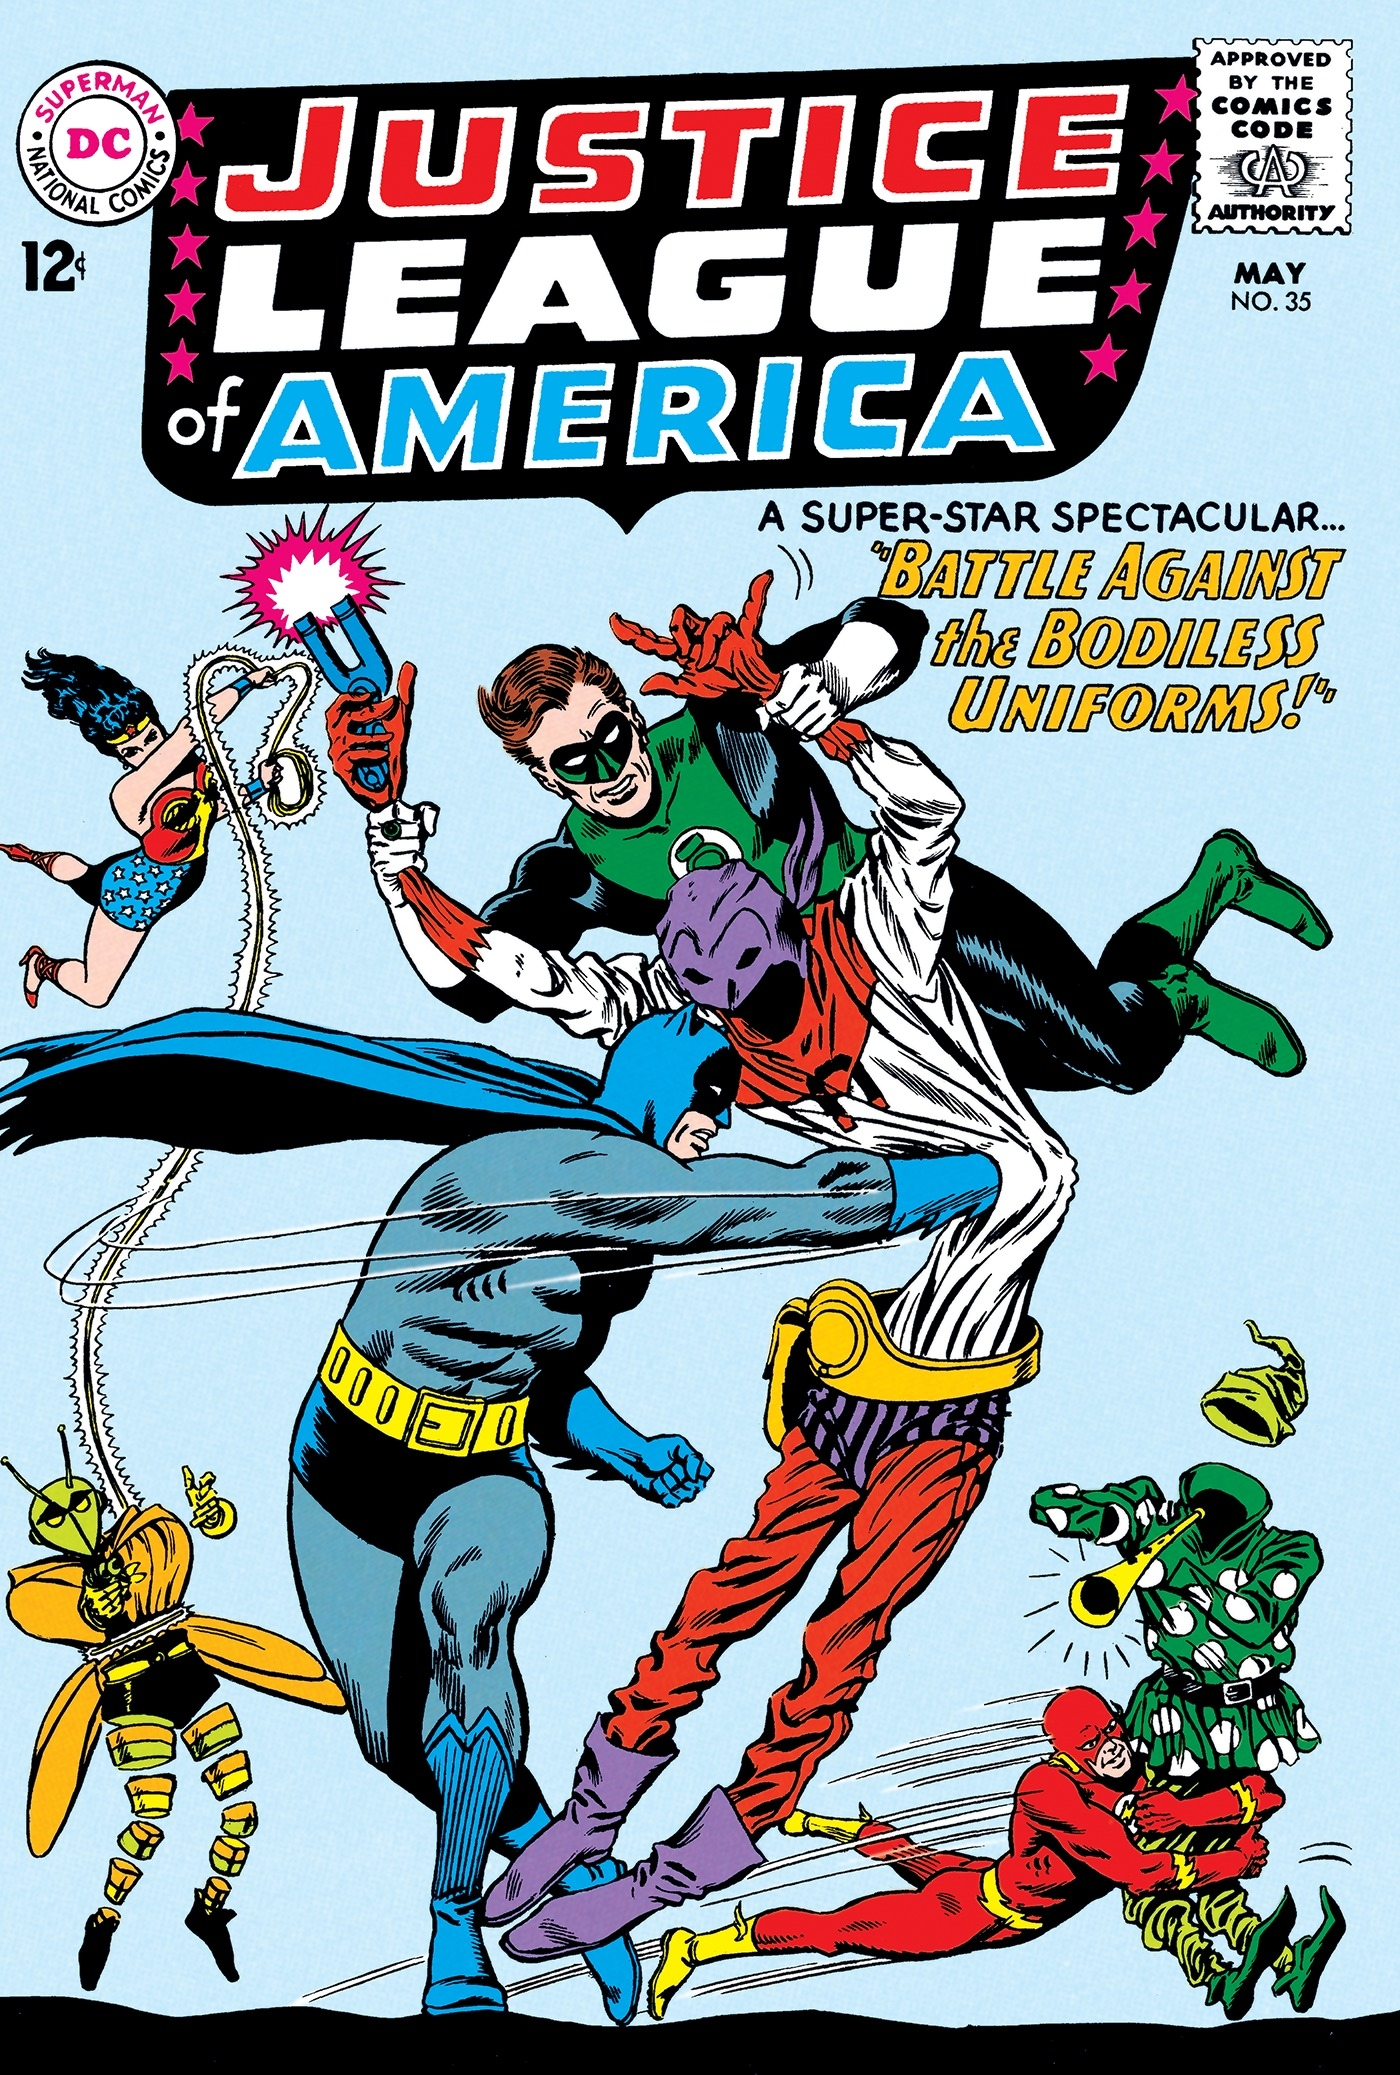 Justice League of America: The Silver Age Vol. 4 (JLA (Justice League of America))